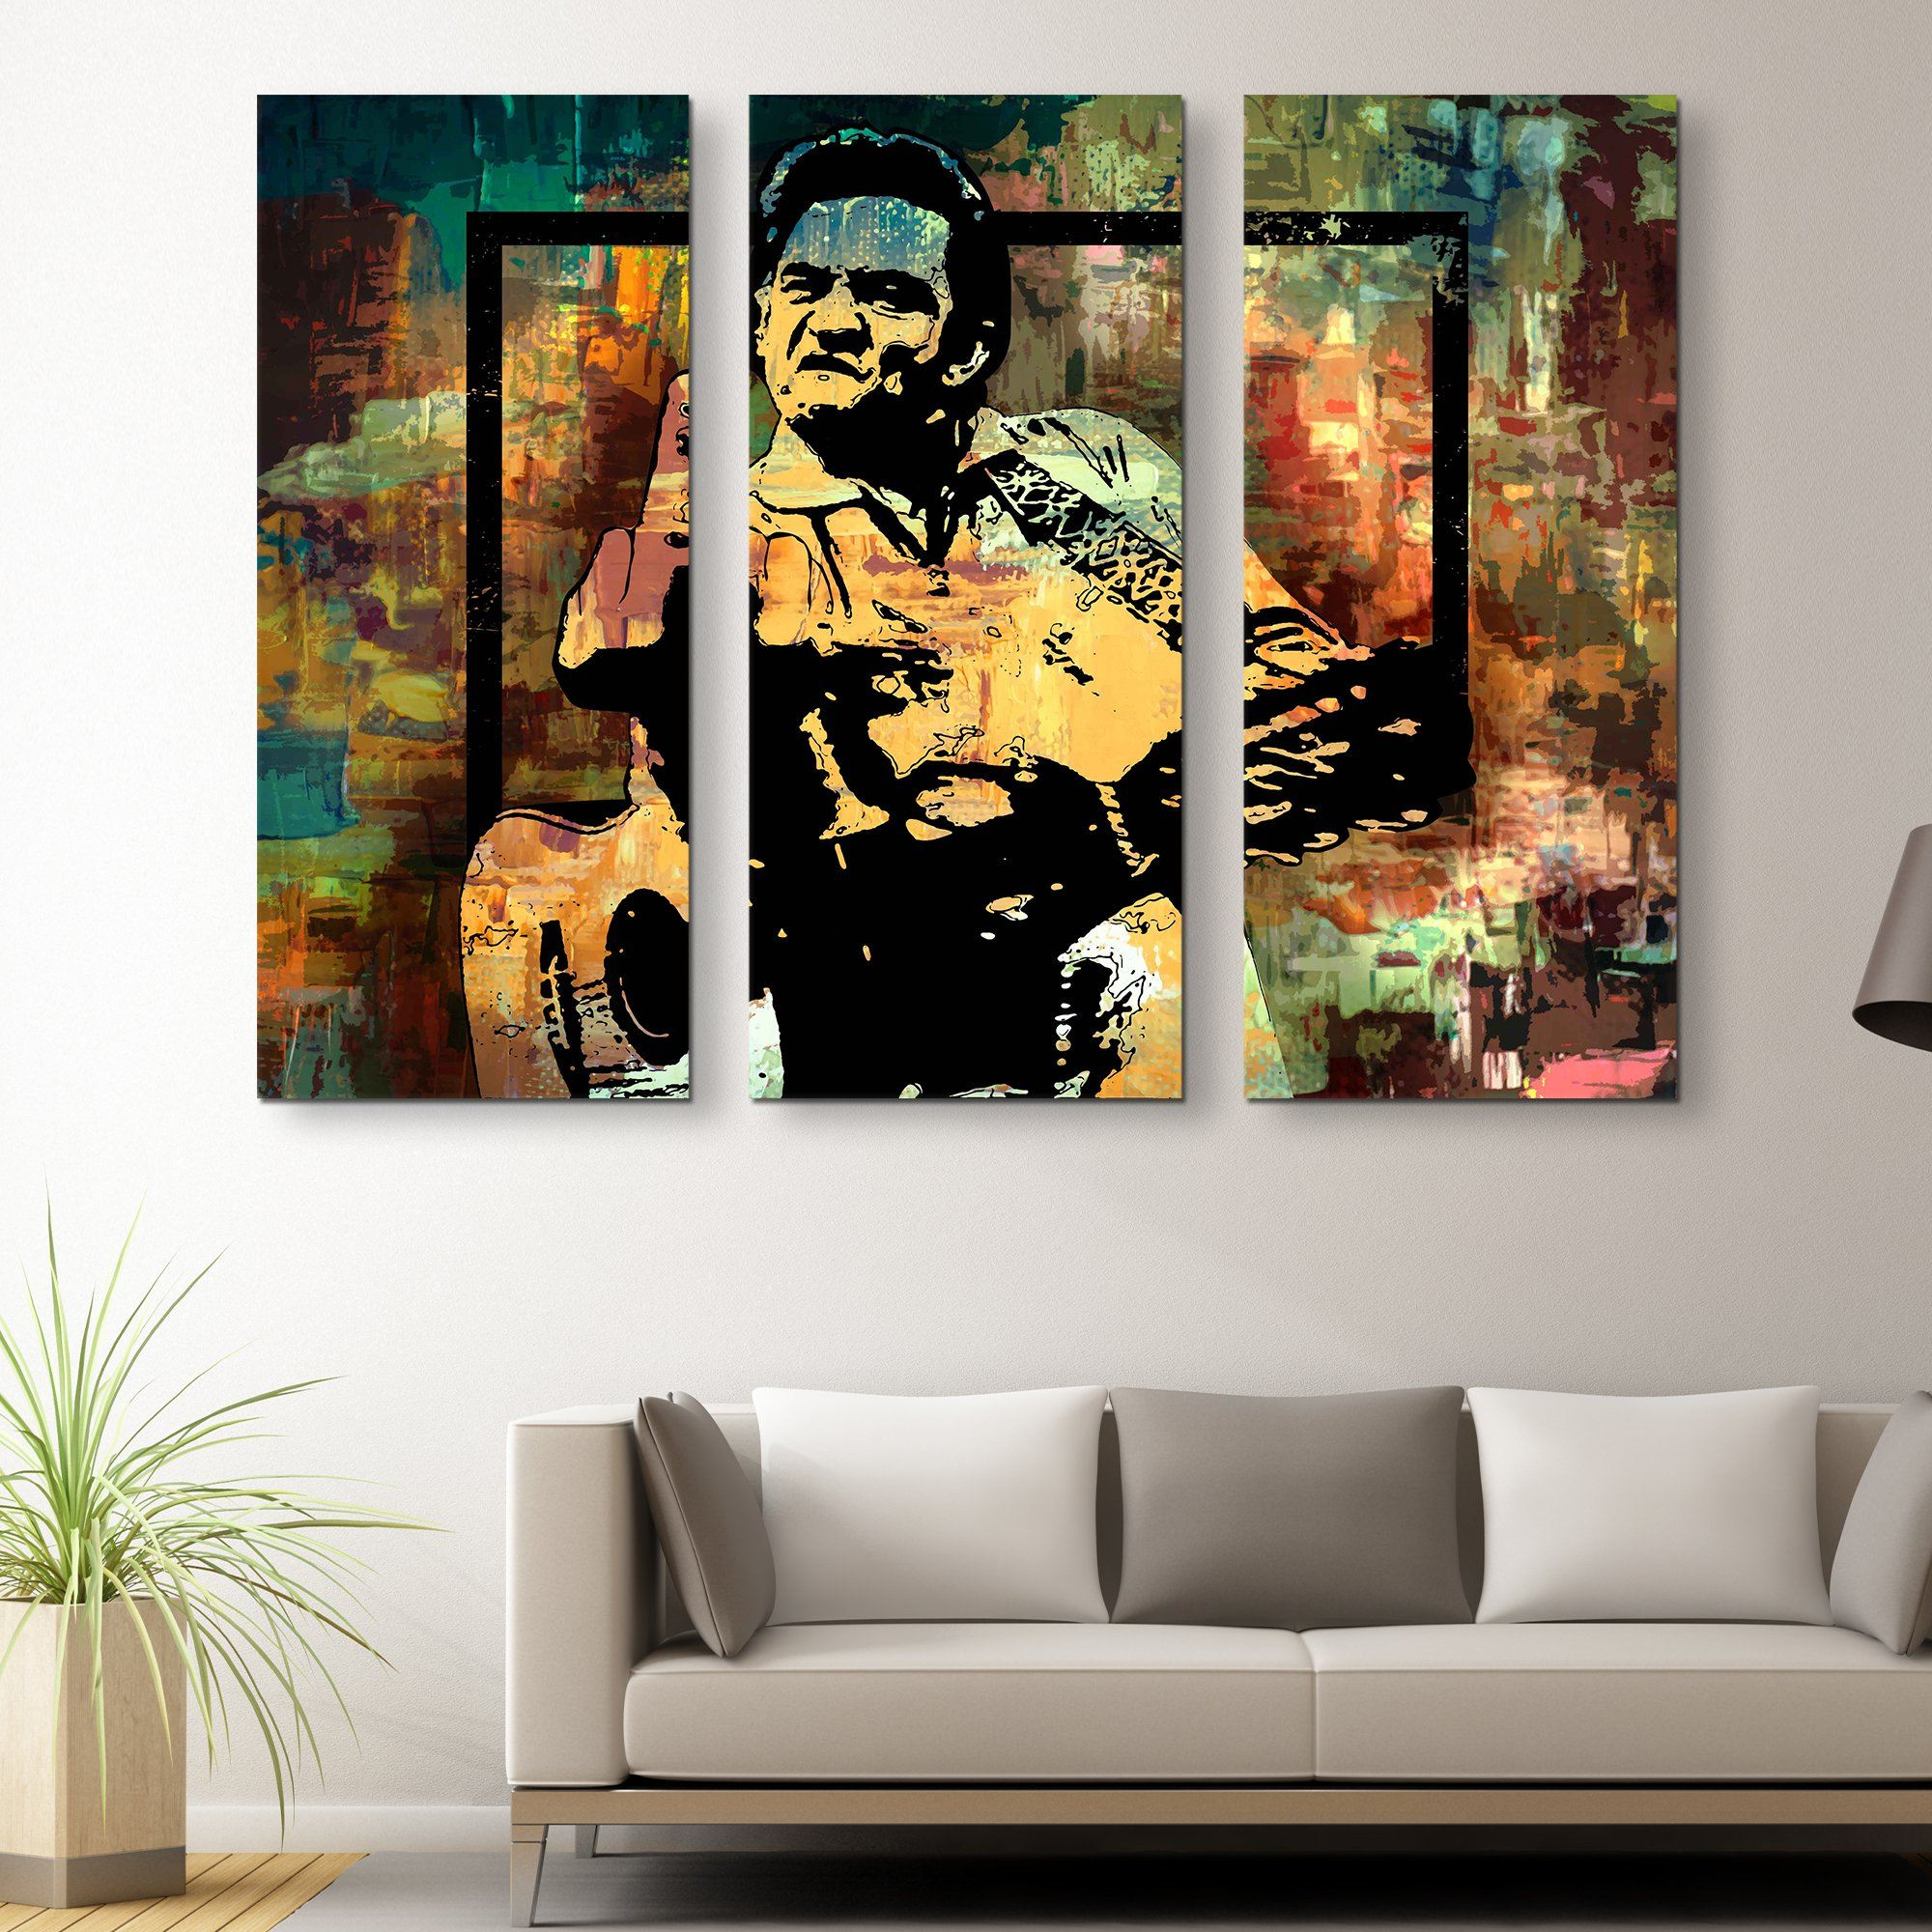 3 piece Johnny Cash Middle Finger wall art